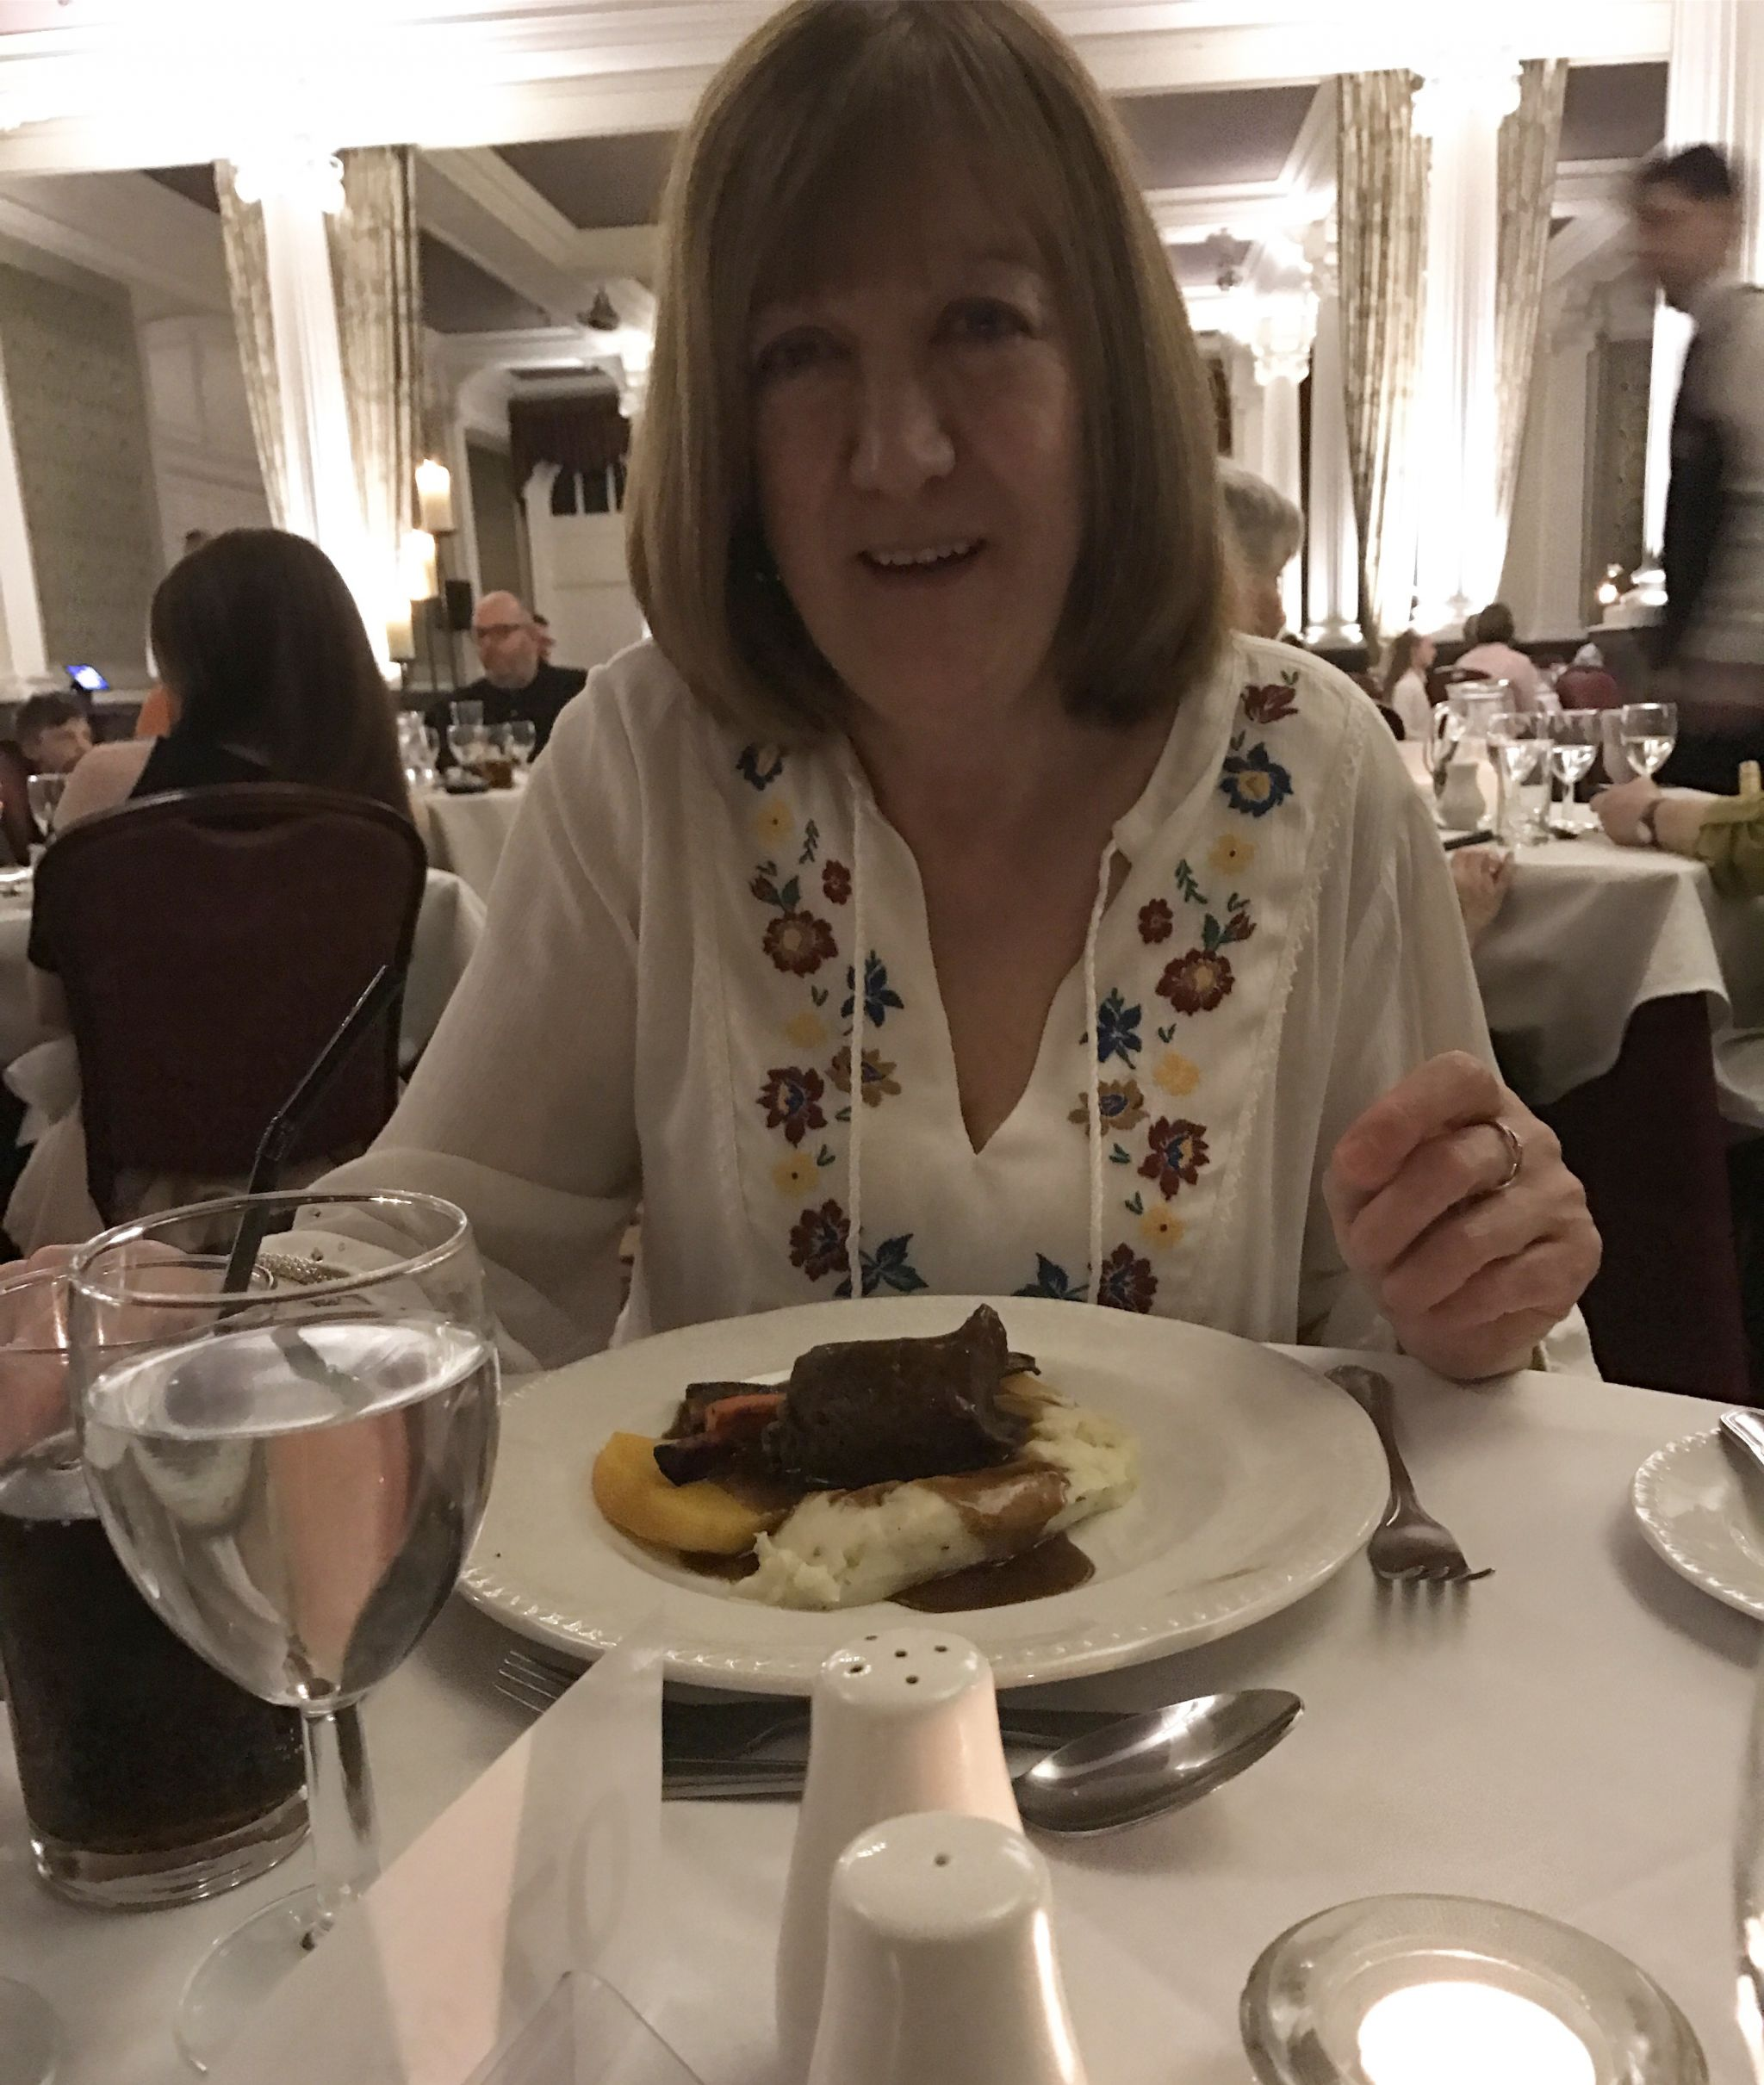 Mum at the Majestic Hotel, Harrogate